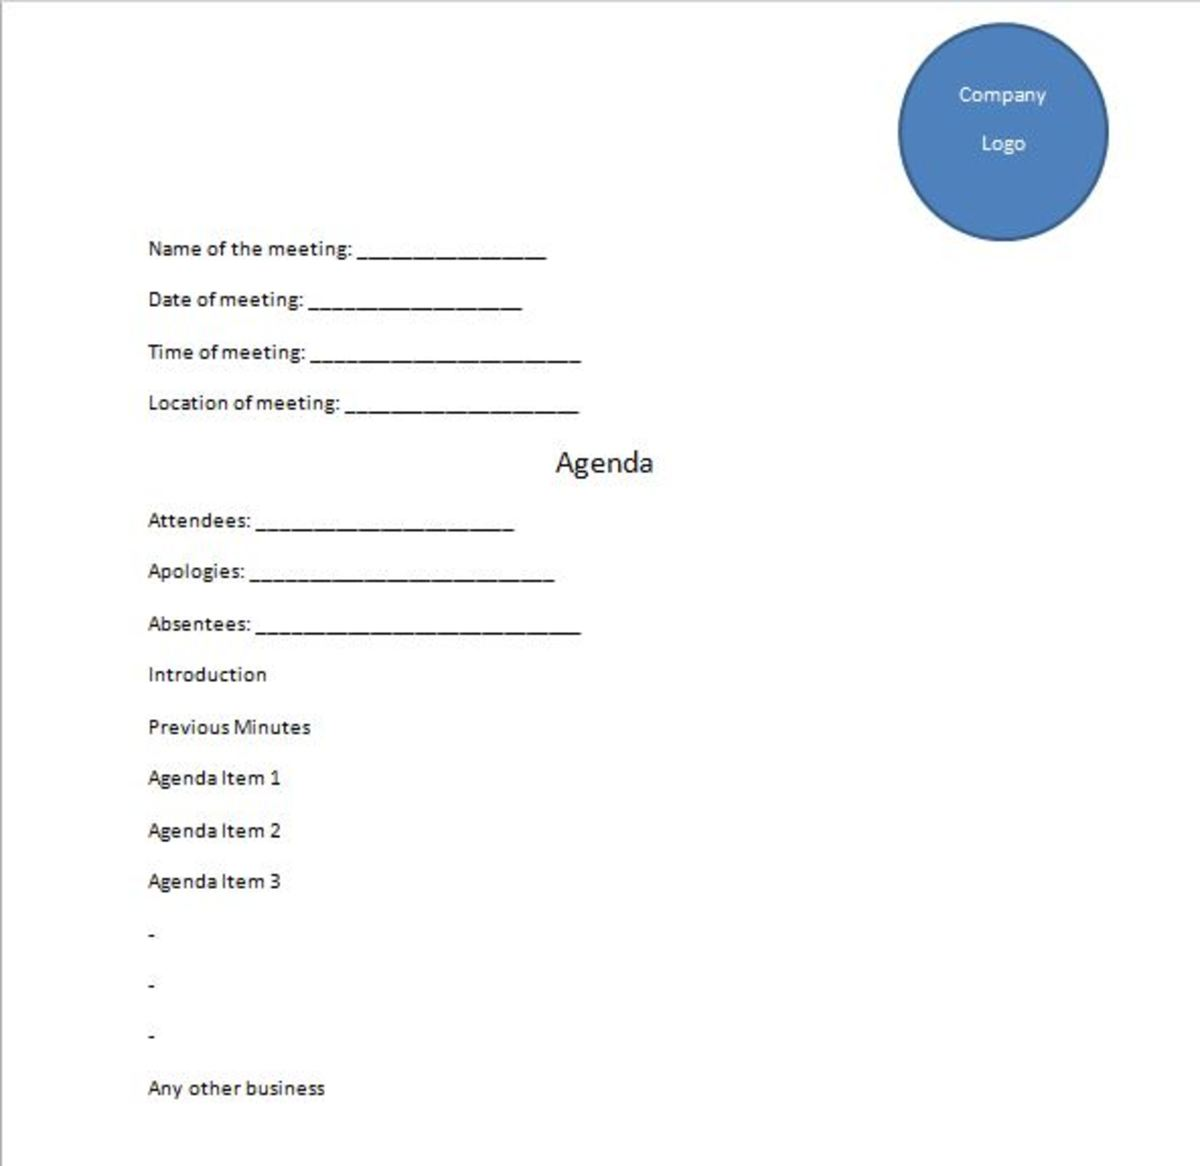 Sample template for Meeting Agenda